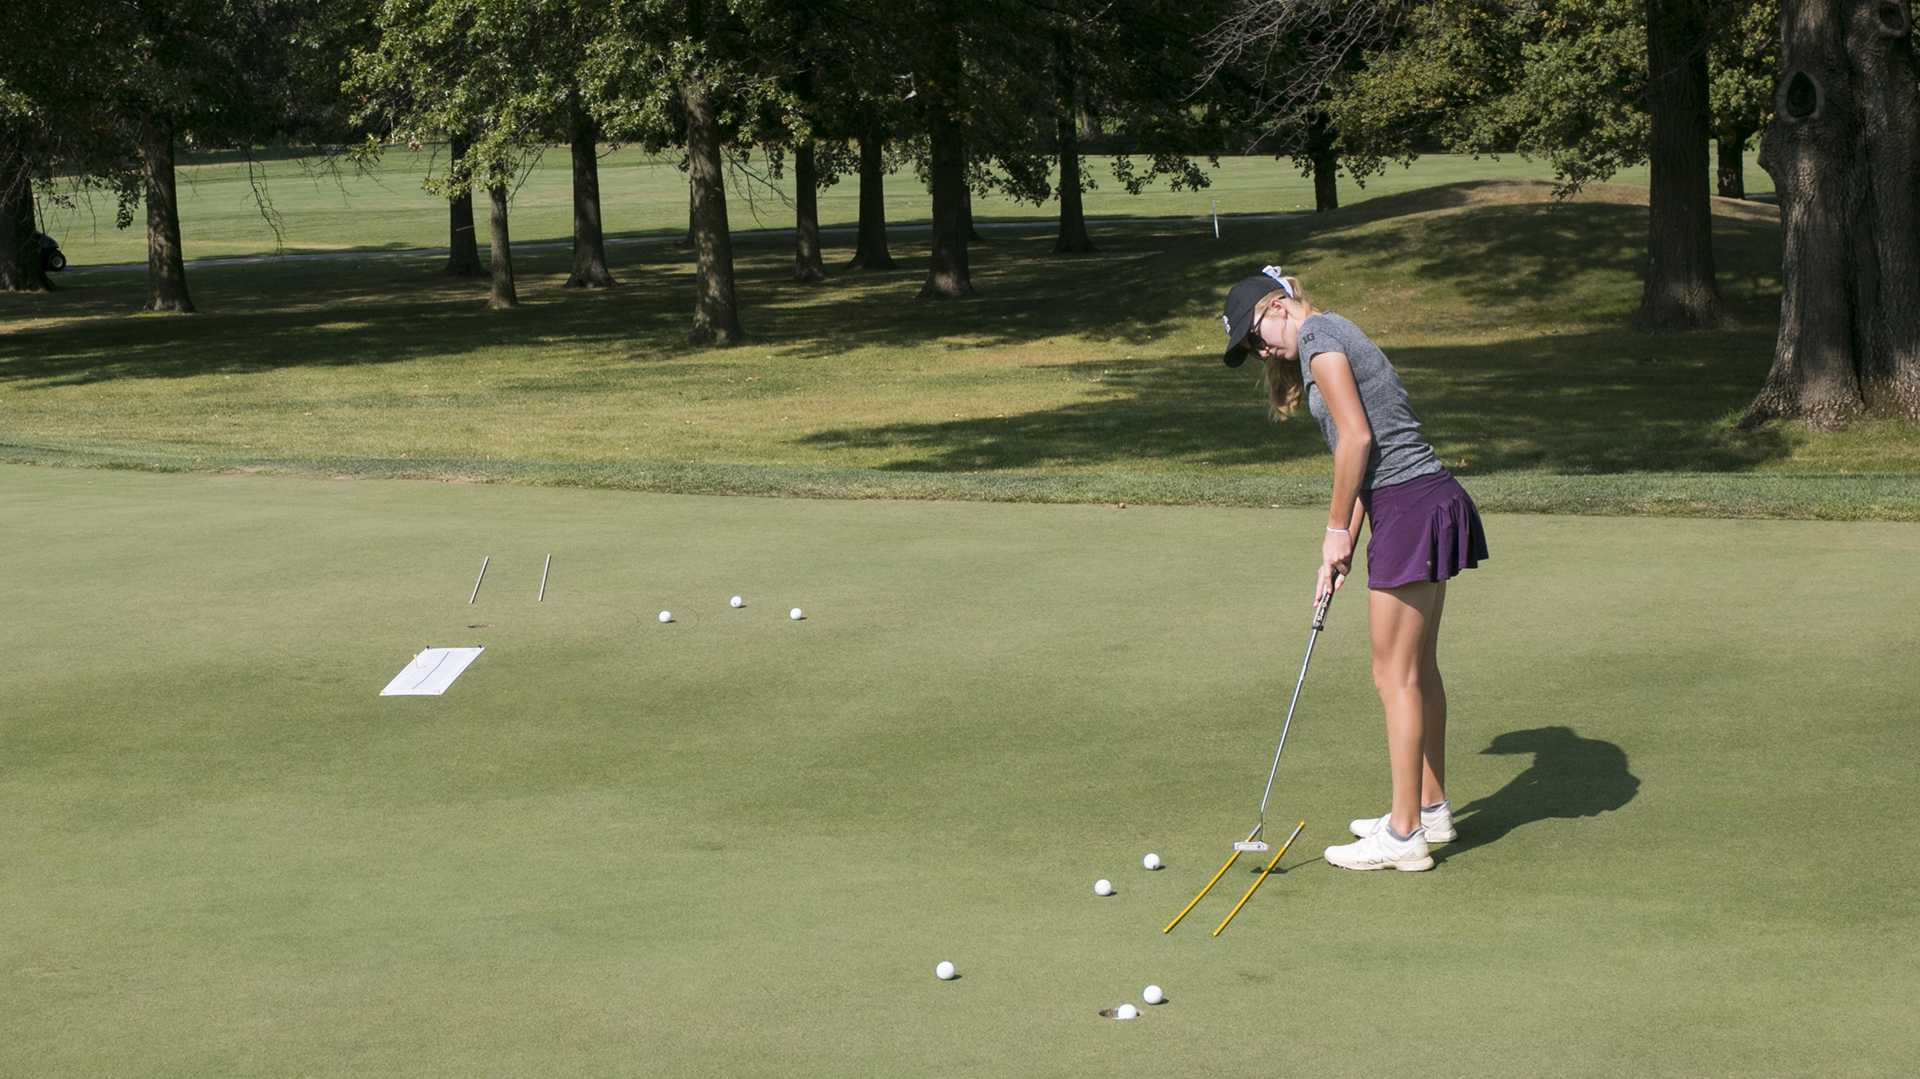 A member of the University of Iowa women's golf team practices her putting on Thursday, Sept. 14, 2017. (Joseph Cress/The Daily Iowan)